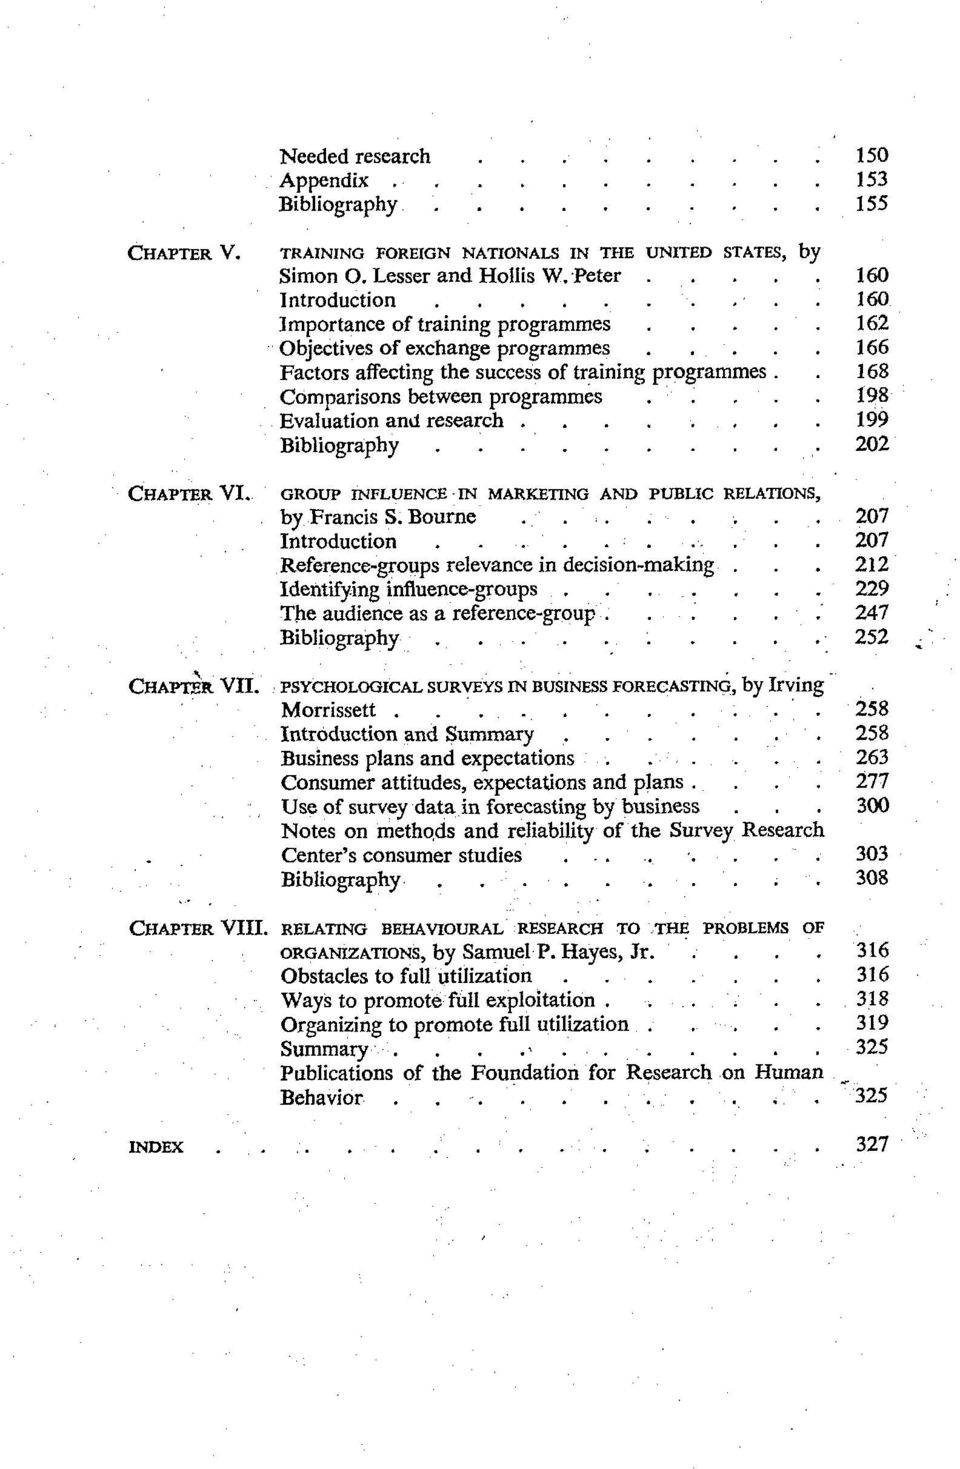 .... 198 Evaluation and research........ 199 Bibliography.......... 202 CHAPTERVI. GROUP INFLUENCE IN MARKETING AND PUBLIC RELATIONS. by Francis S. Bourne........ 207 Introduction.